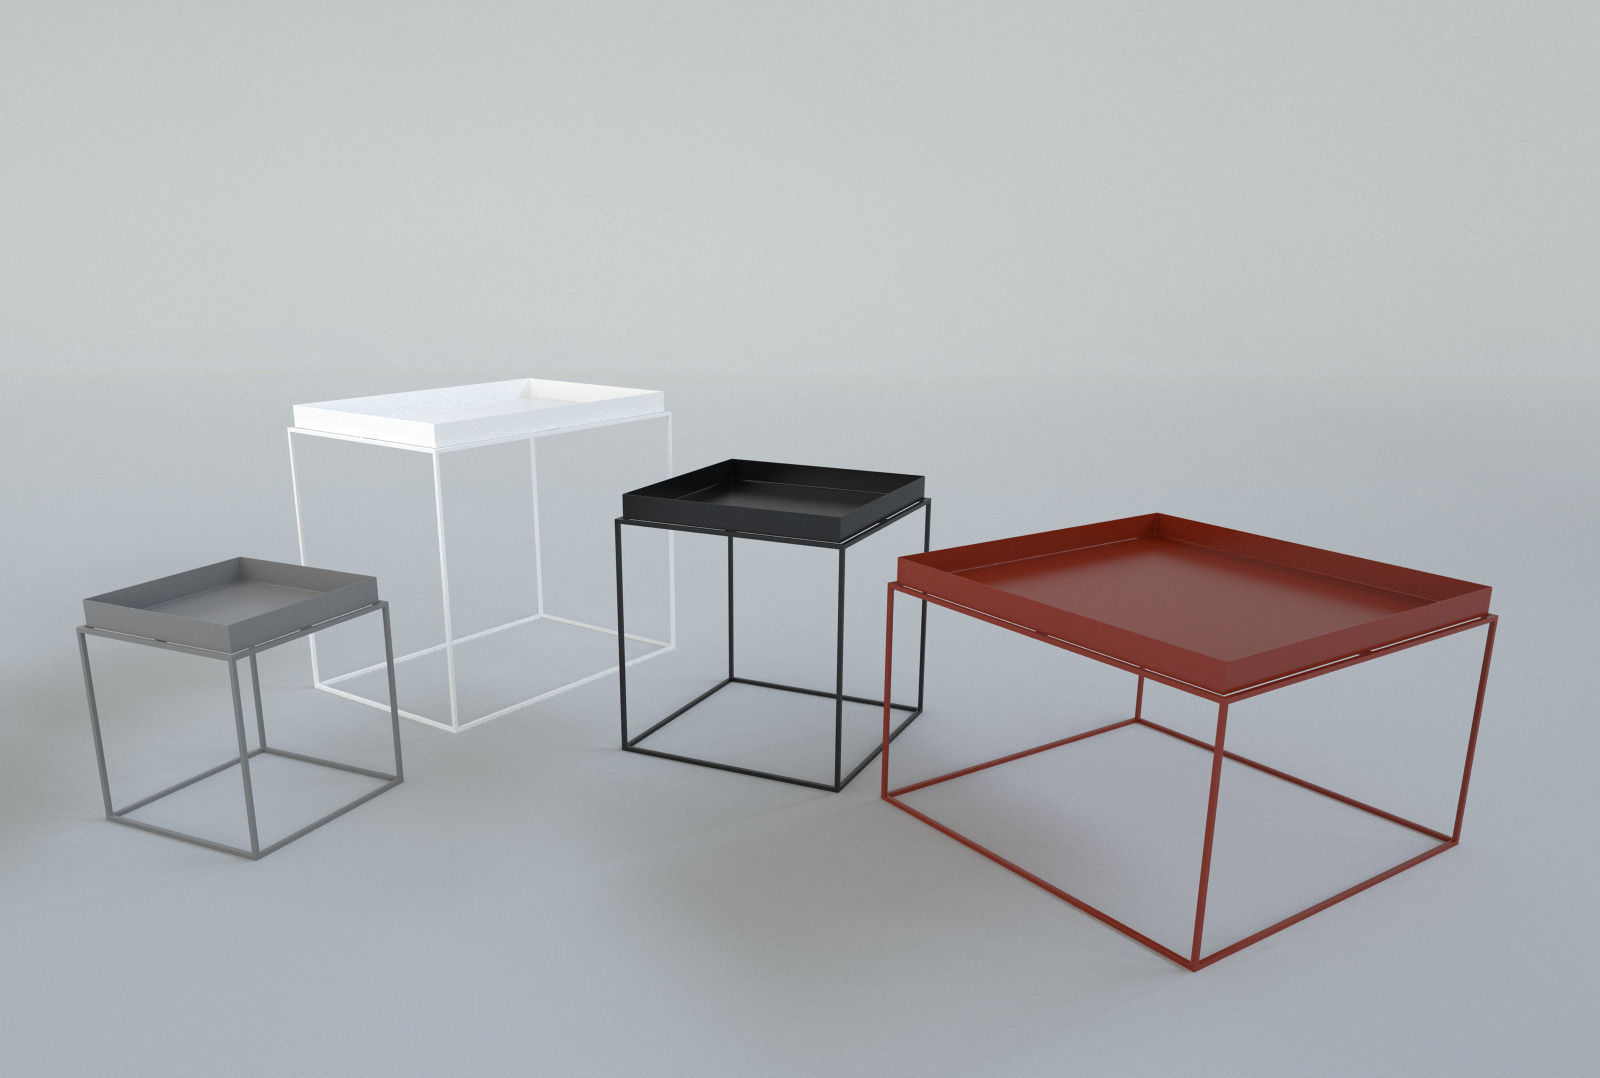 hay tray table 3d model max obj fbx